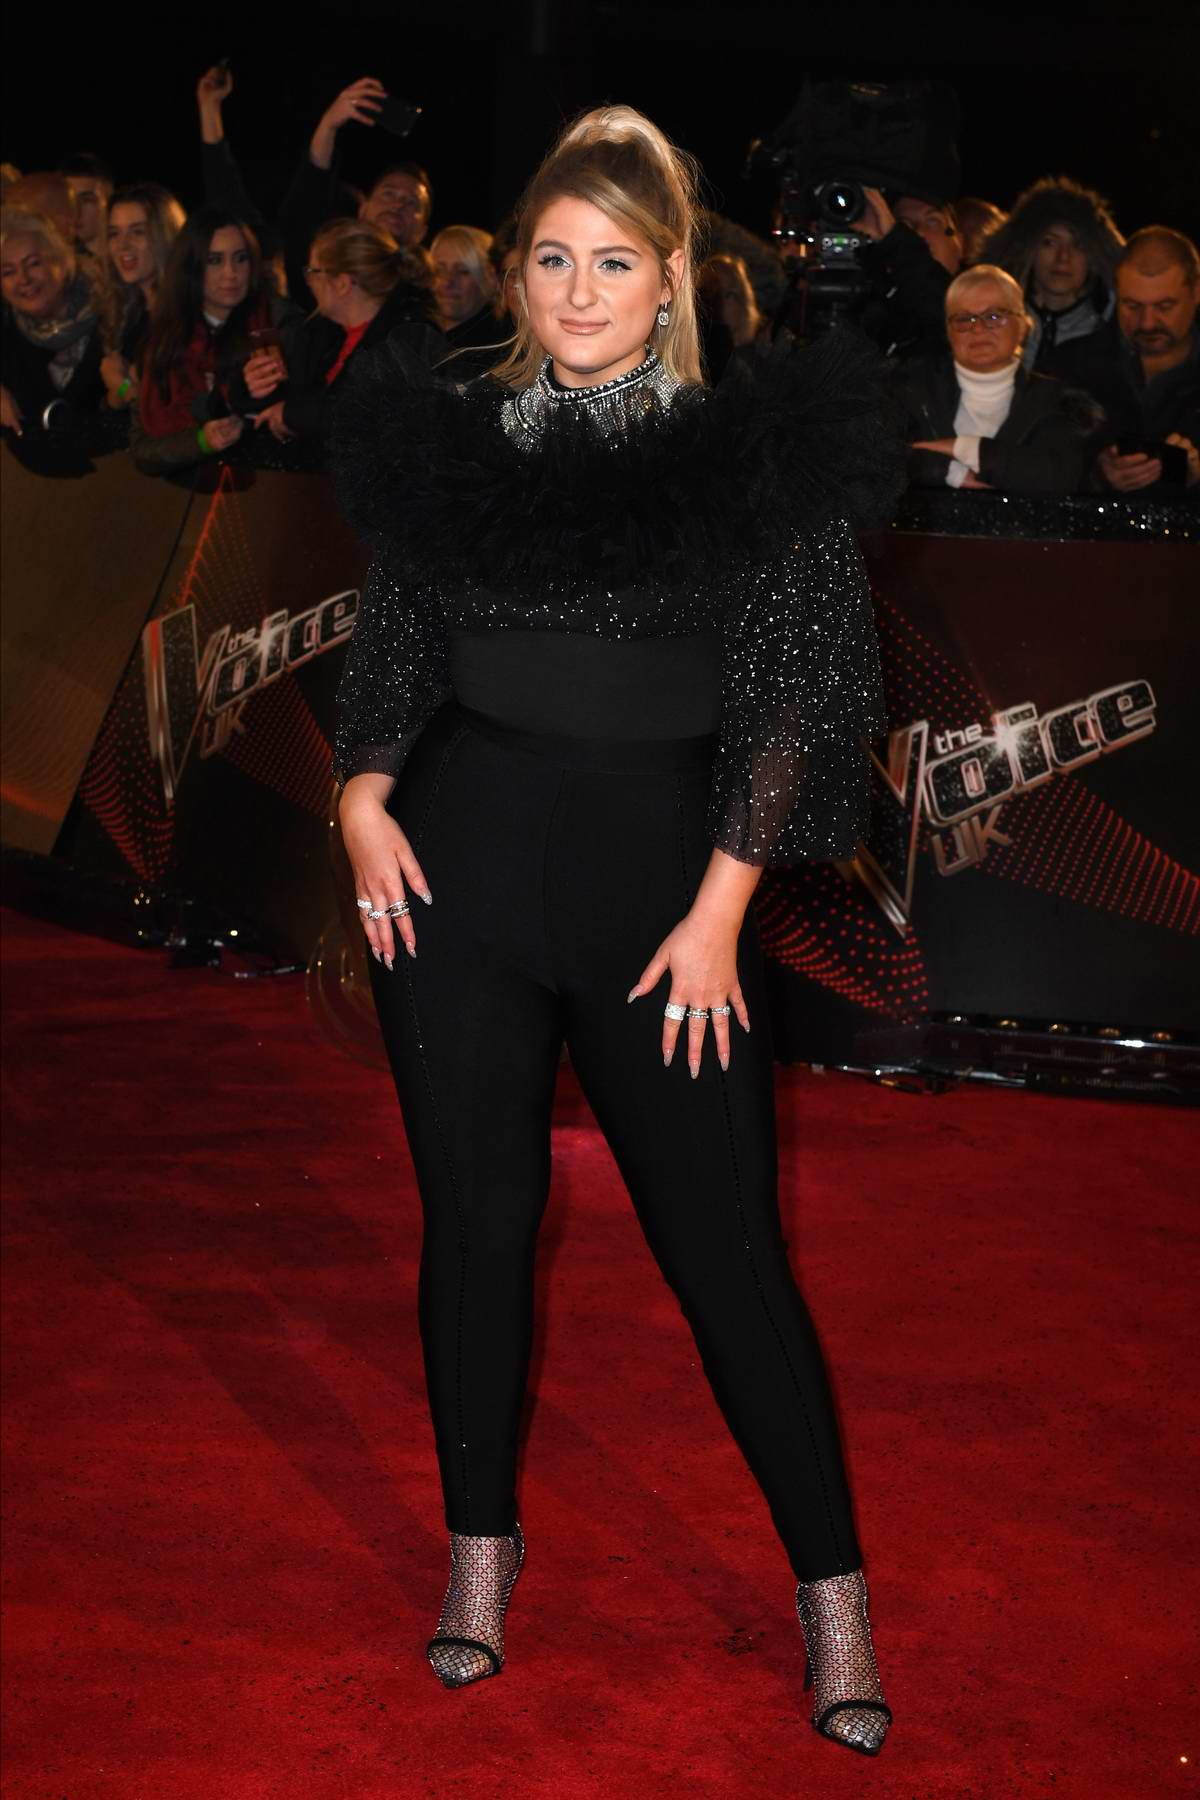 Meghan Trainor attends 'The Voice' UK Blind Auditions at Studio's MediaCityUK in Manchester, UK